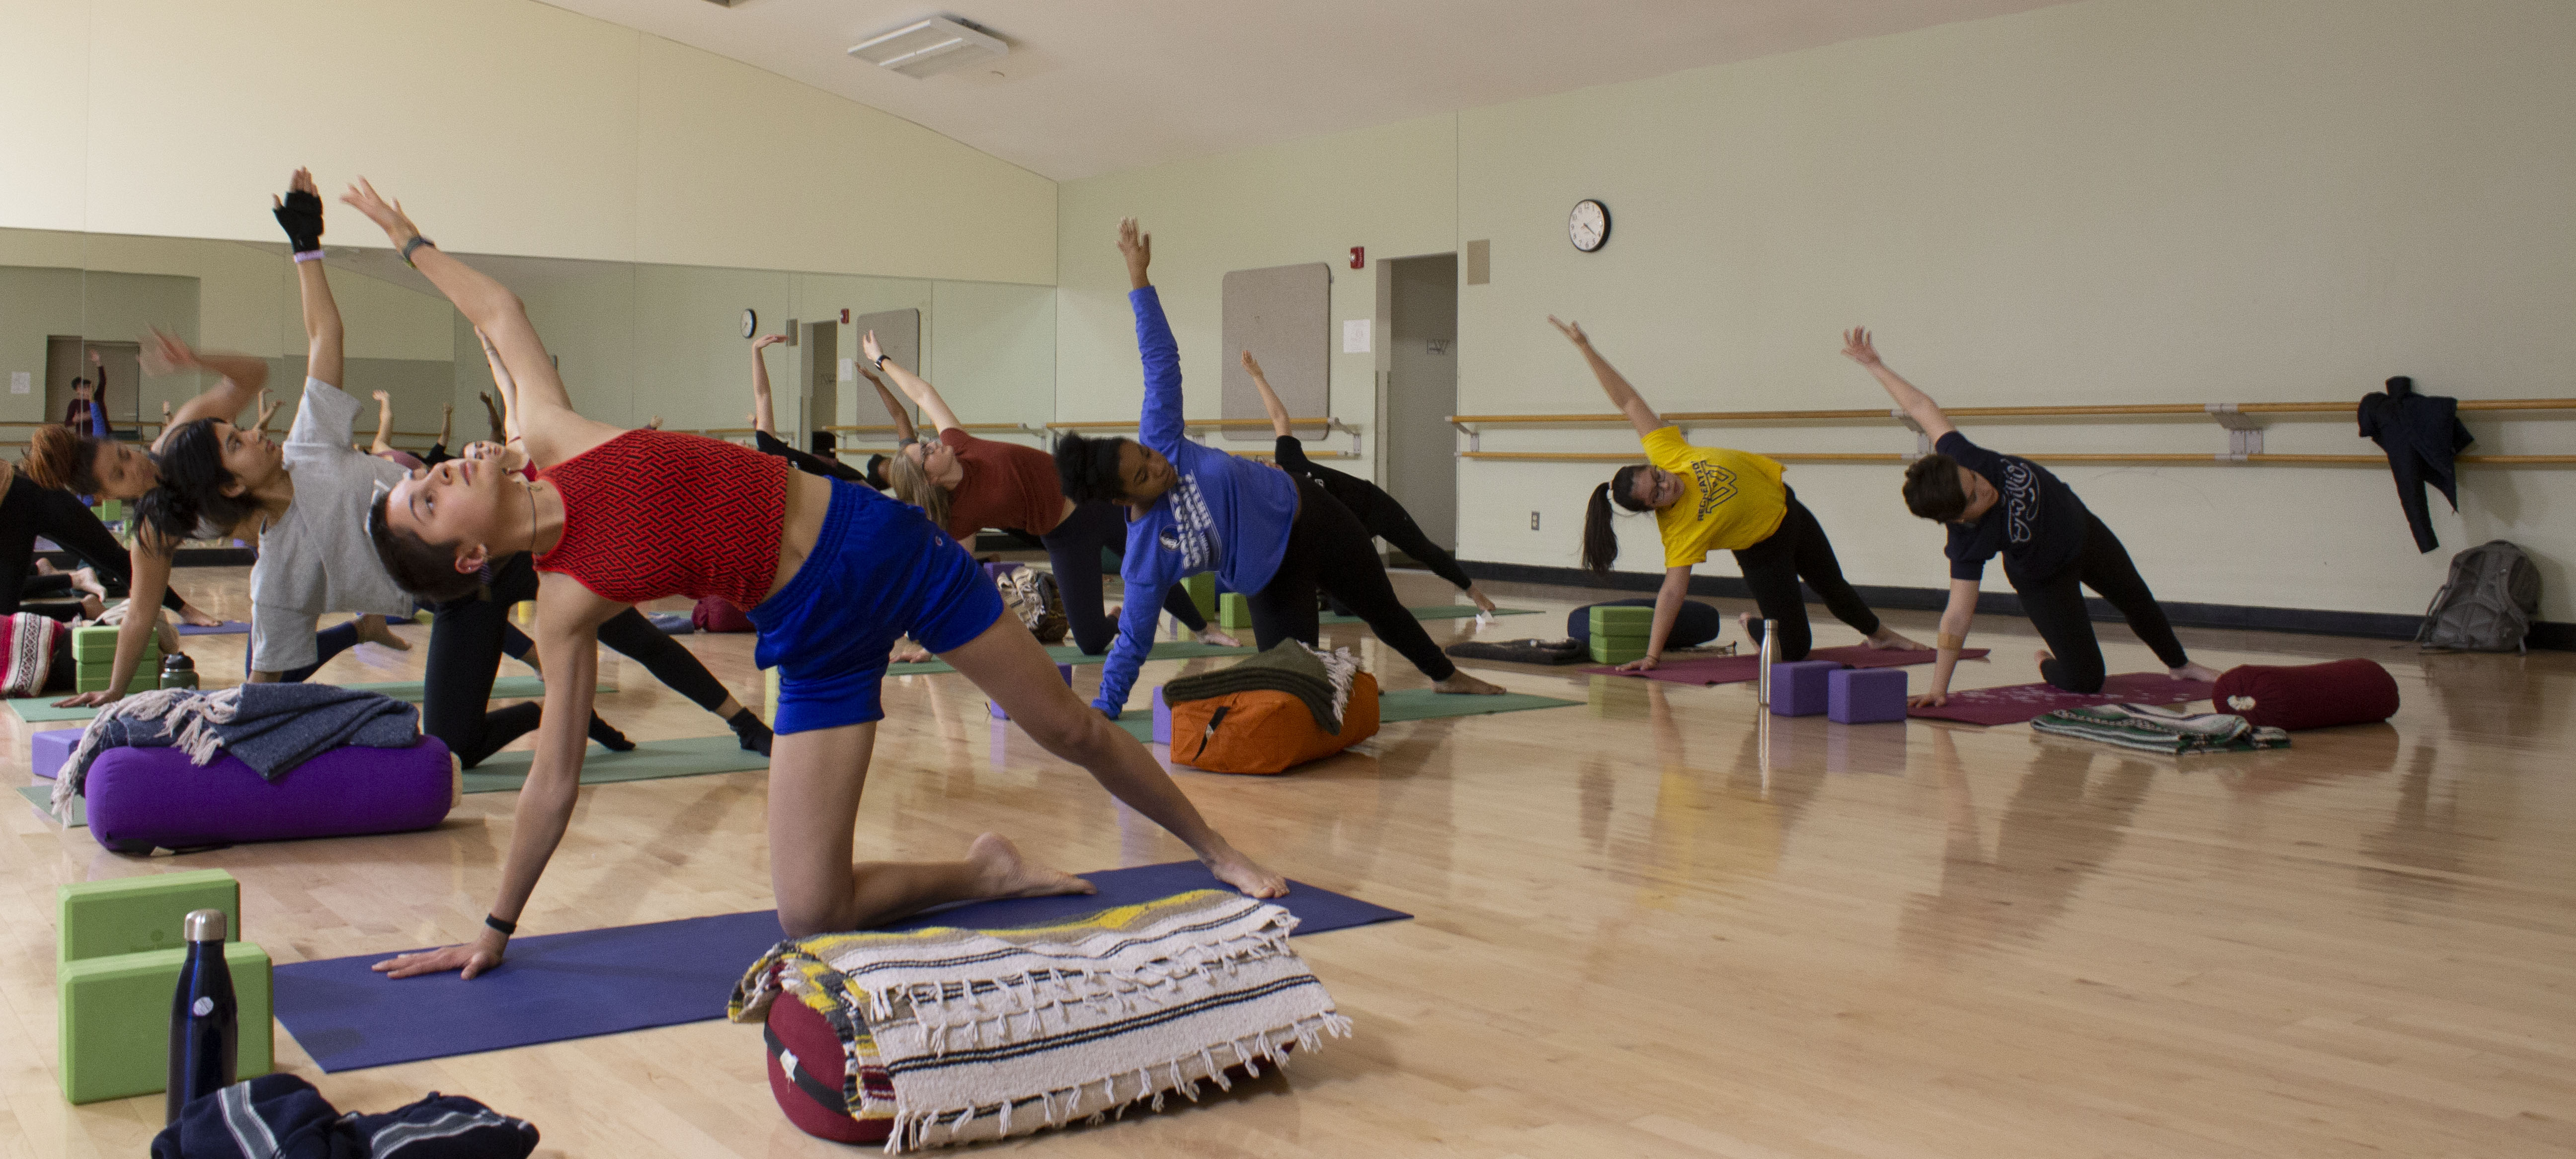 Students, facing the camera, are evenly spaced in the KSC dance room, executing a yoga move on their mats.